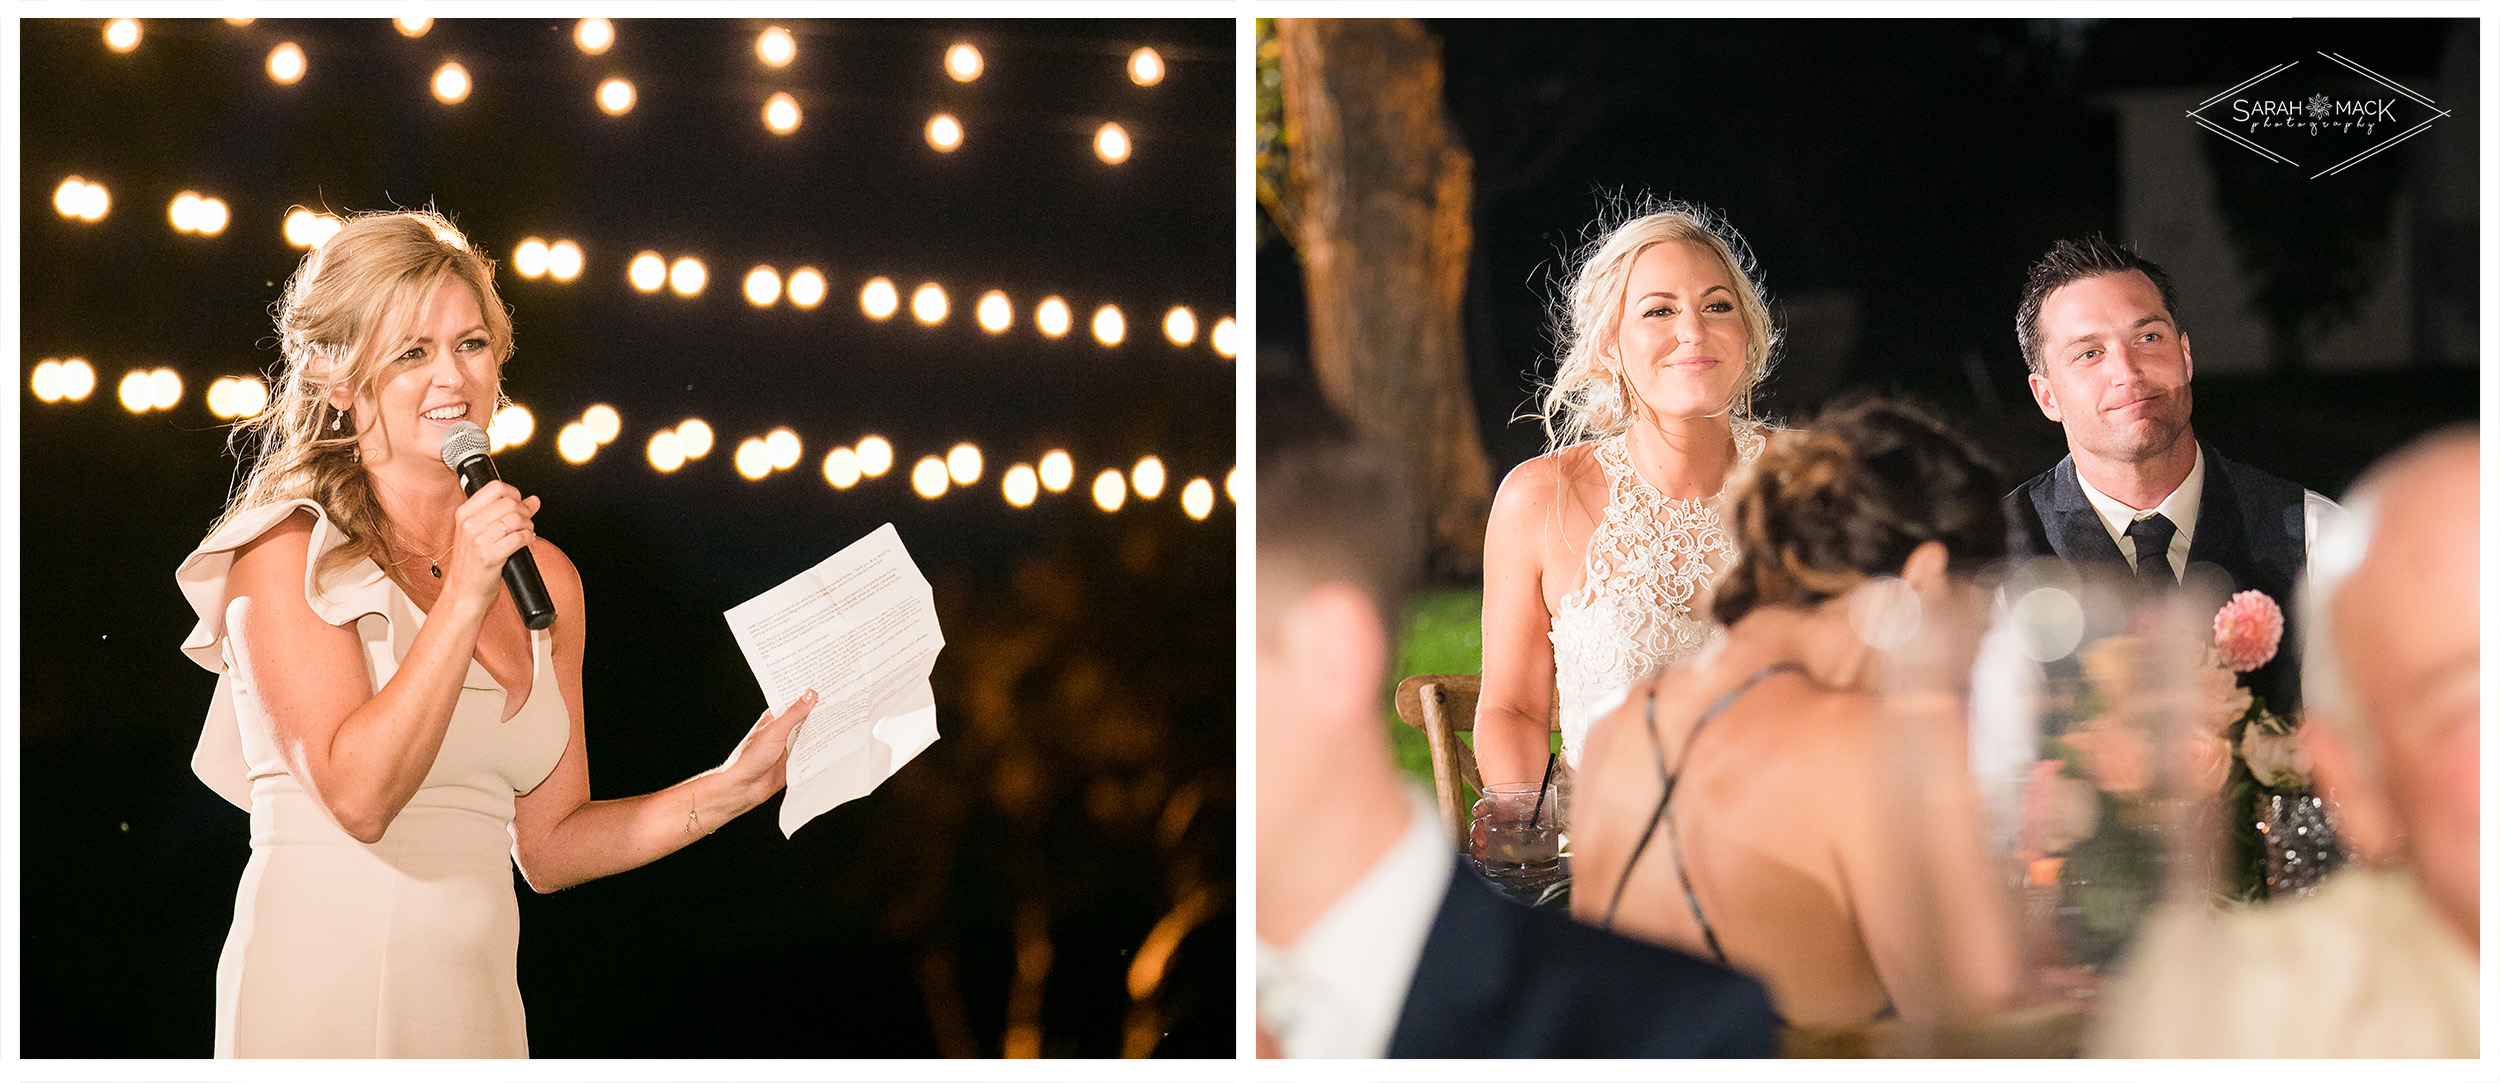 MA-Chandler-Ranch-Paso-Robles-Wedding-Photography-78.jpg